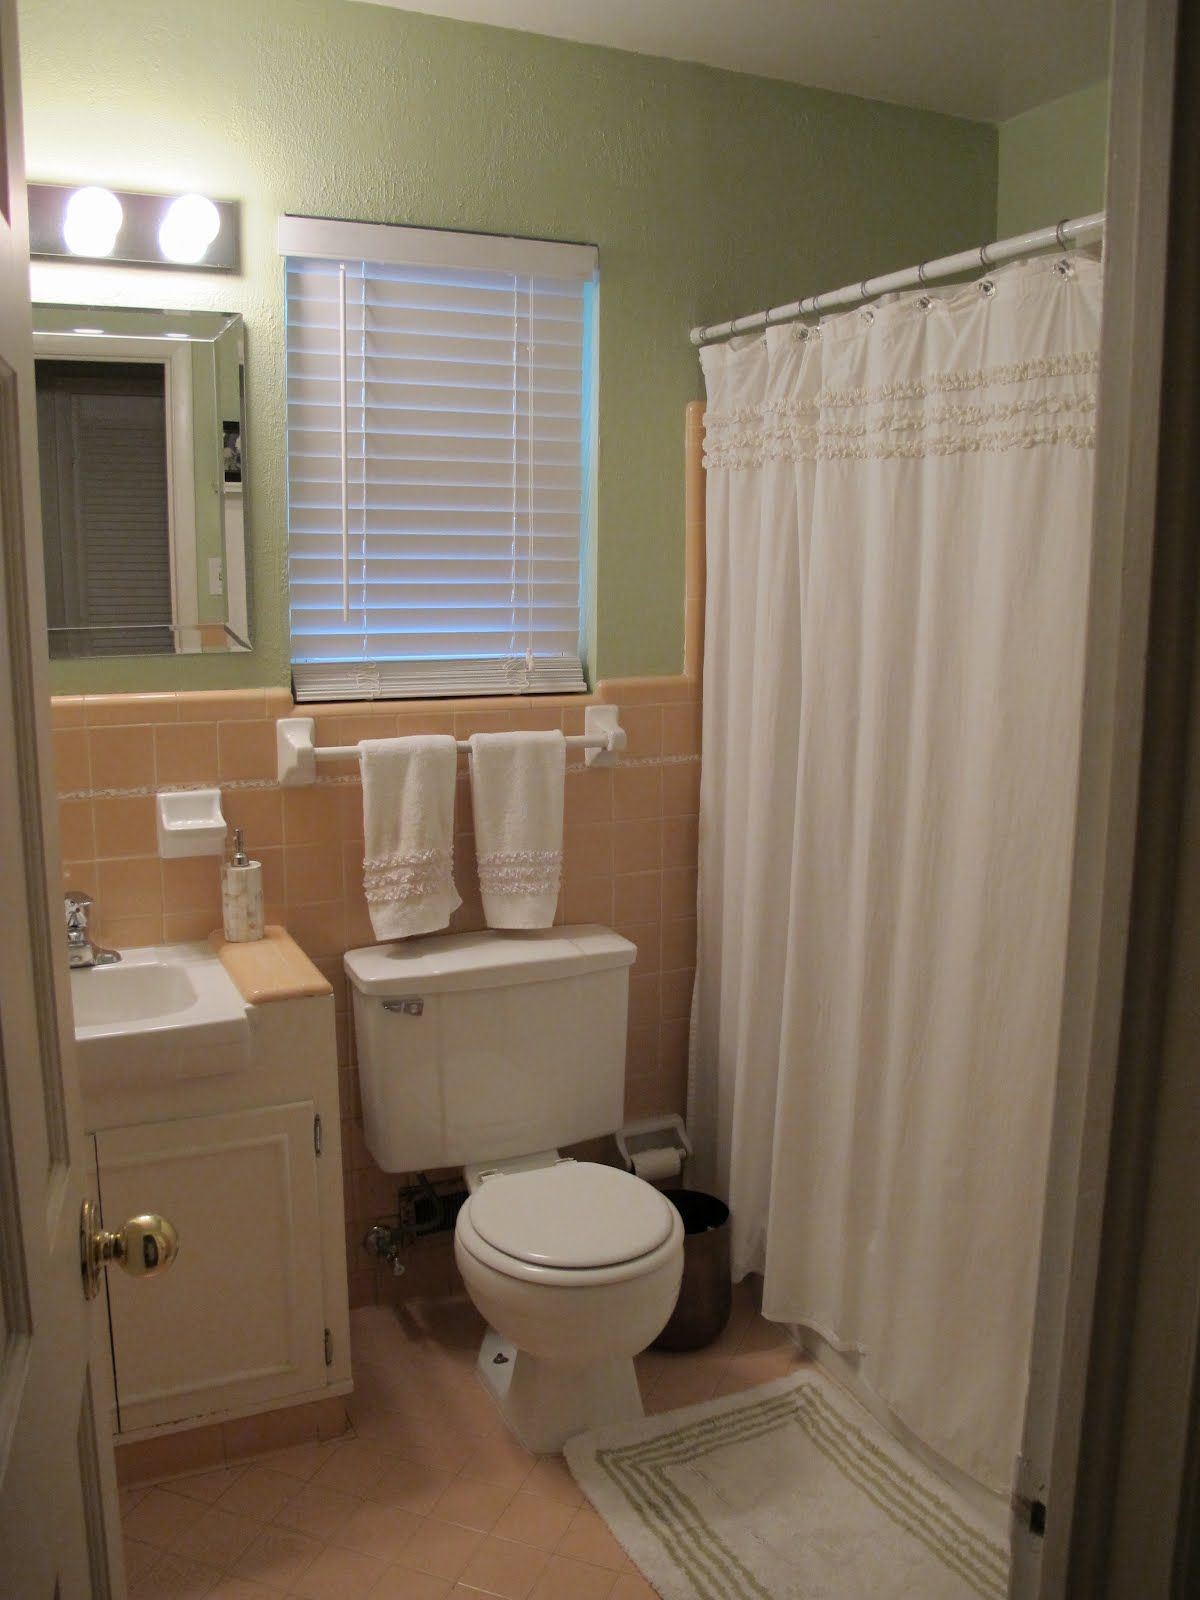 Help Peach Brown Bathroom Tile Home Decorating Amp Design